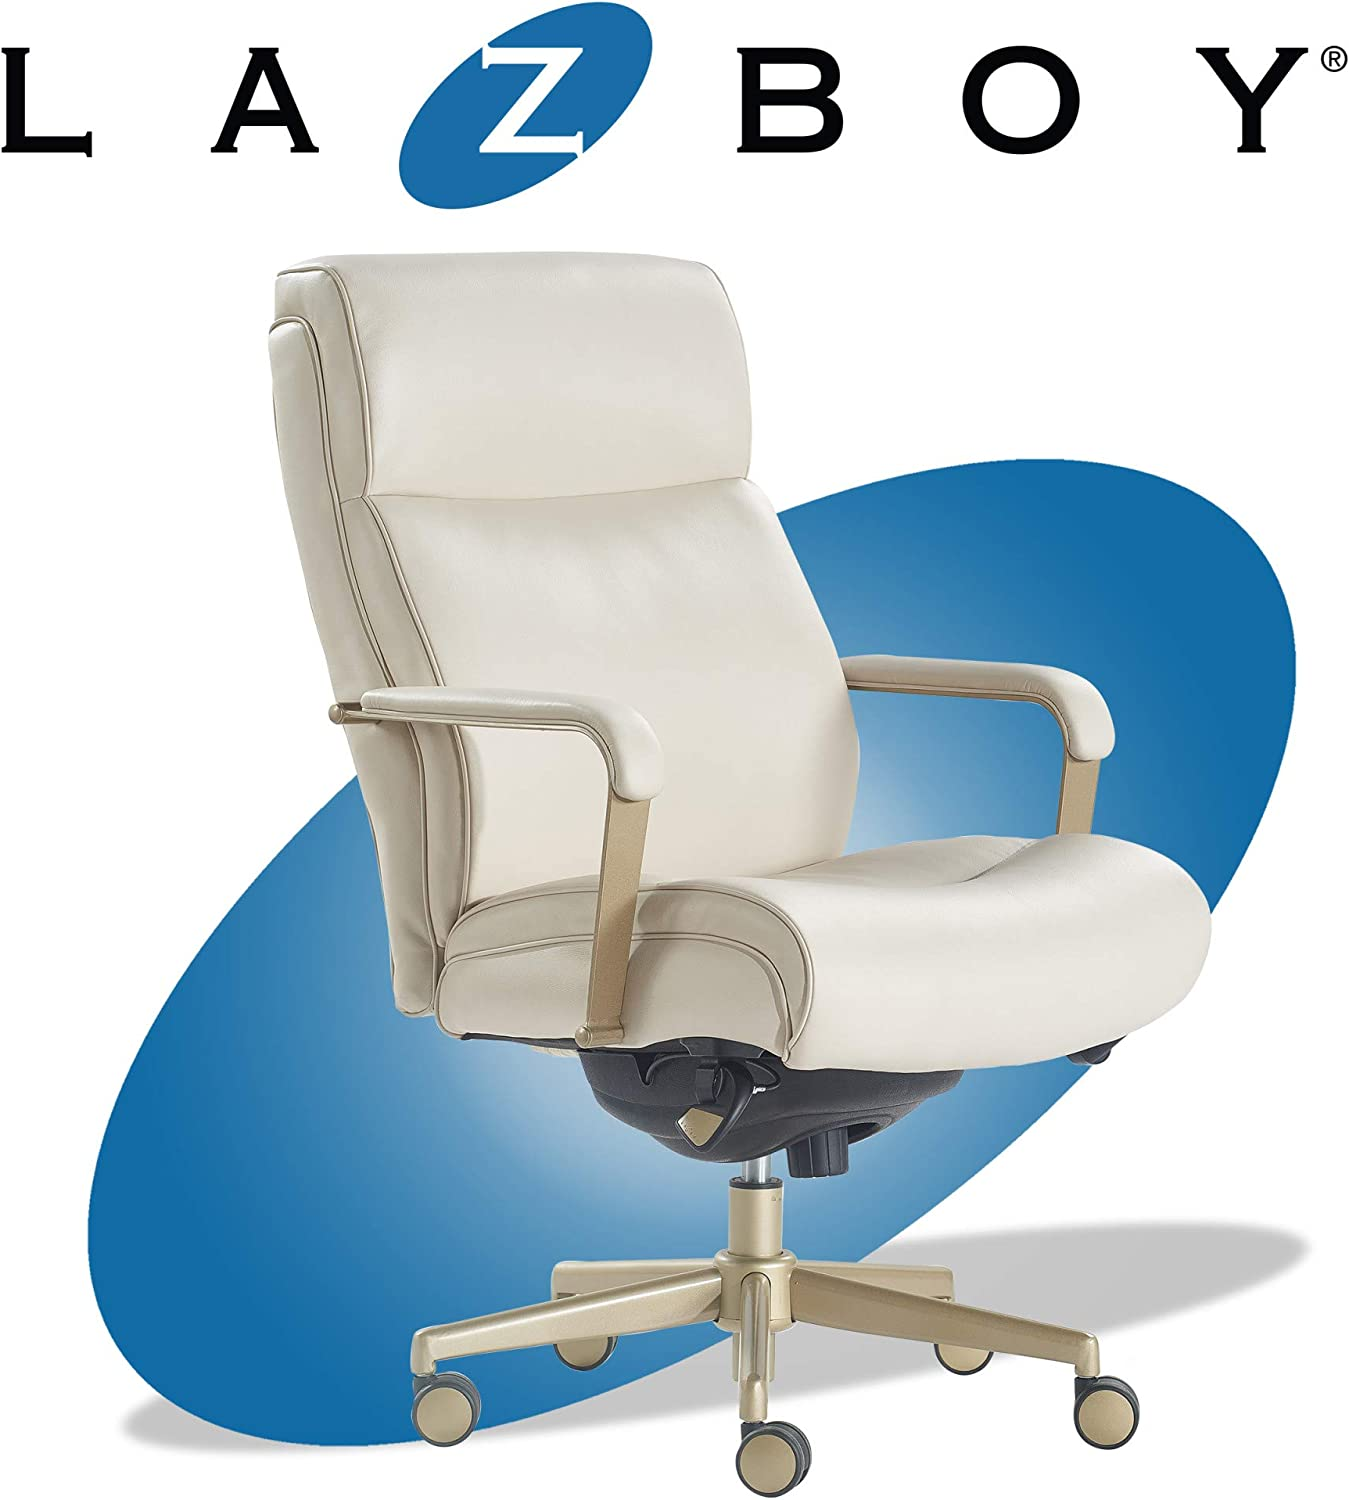 La-Z-Boy Melrose Executive Office, Adjustable High Back Ergonomic Computer  Chair with Lumbar Support, Brass Finish, Ivory White Bonded Leather